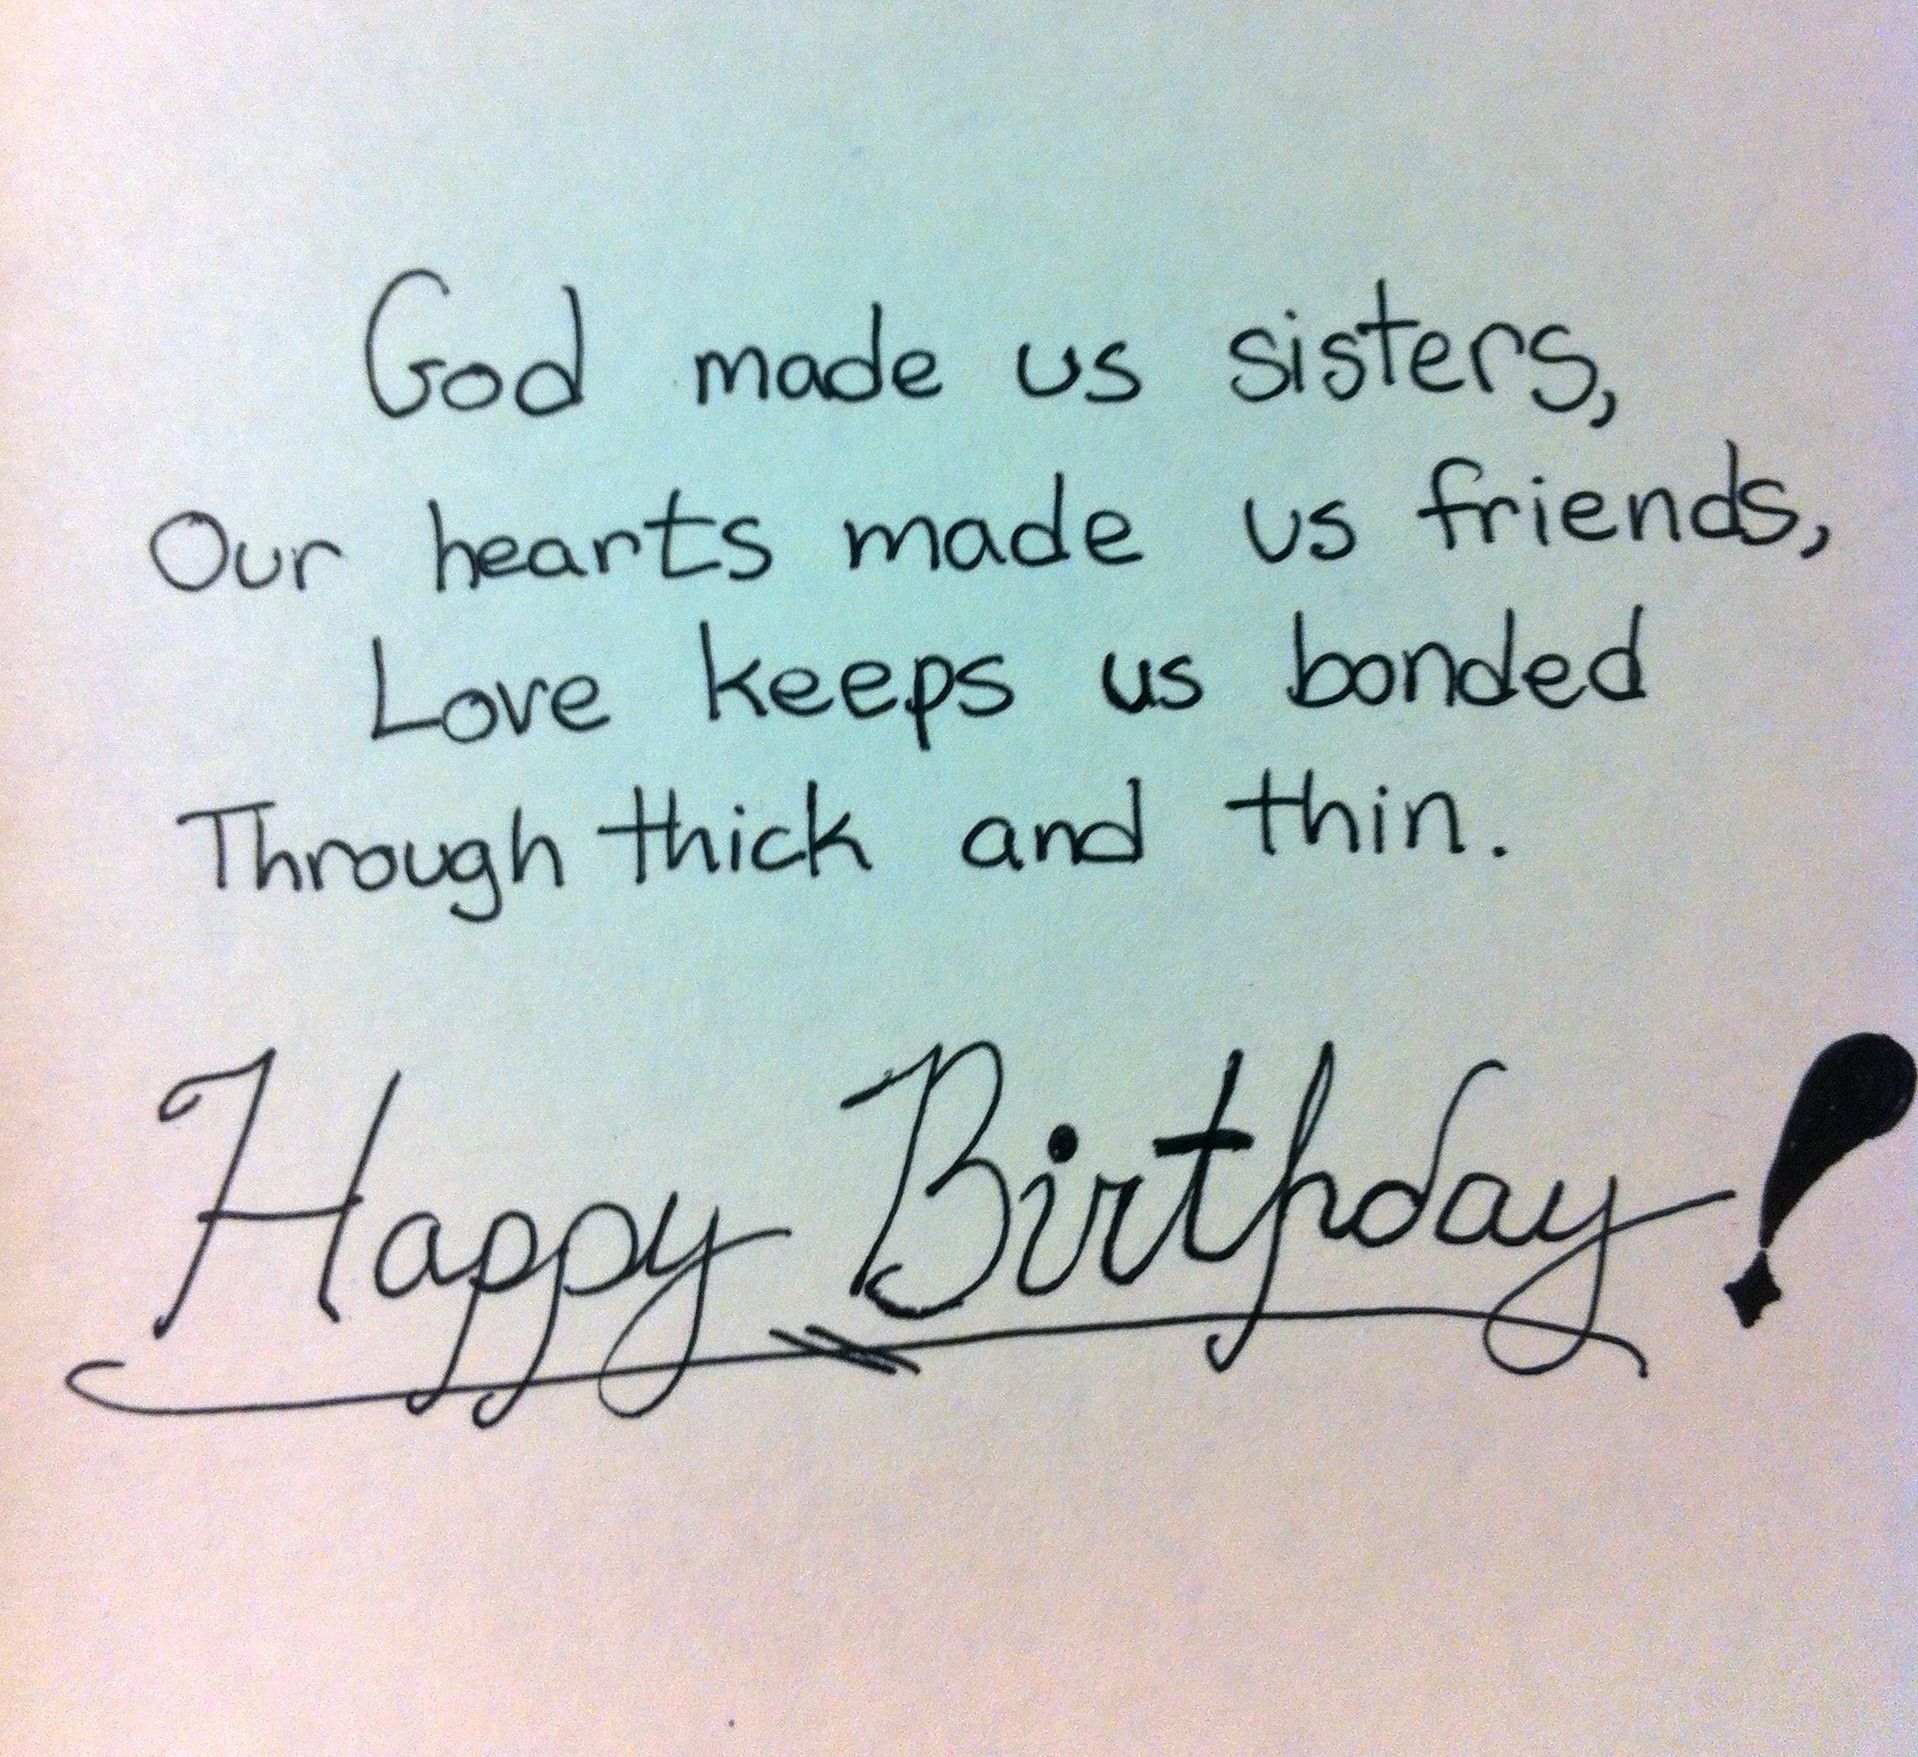 Funny Sister Birthday Wishes  Best Birthday wishes for a Sister – StudentsChillOut